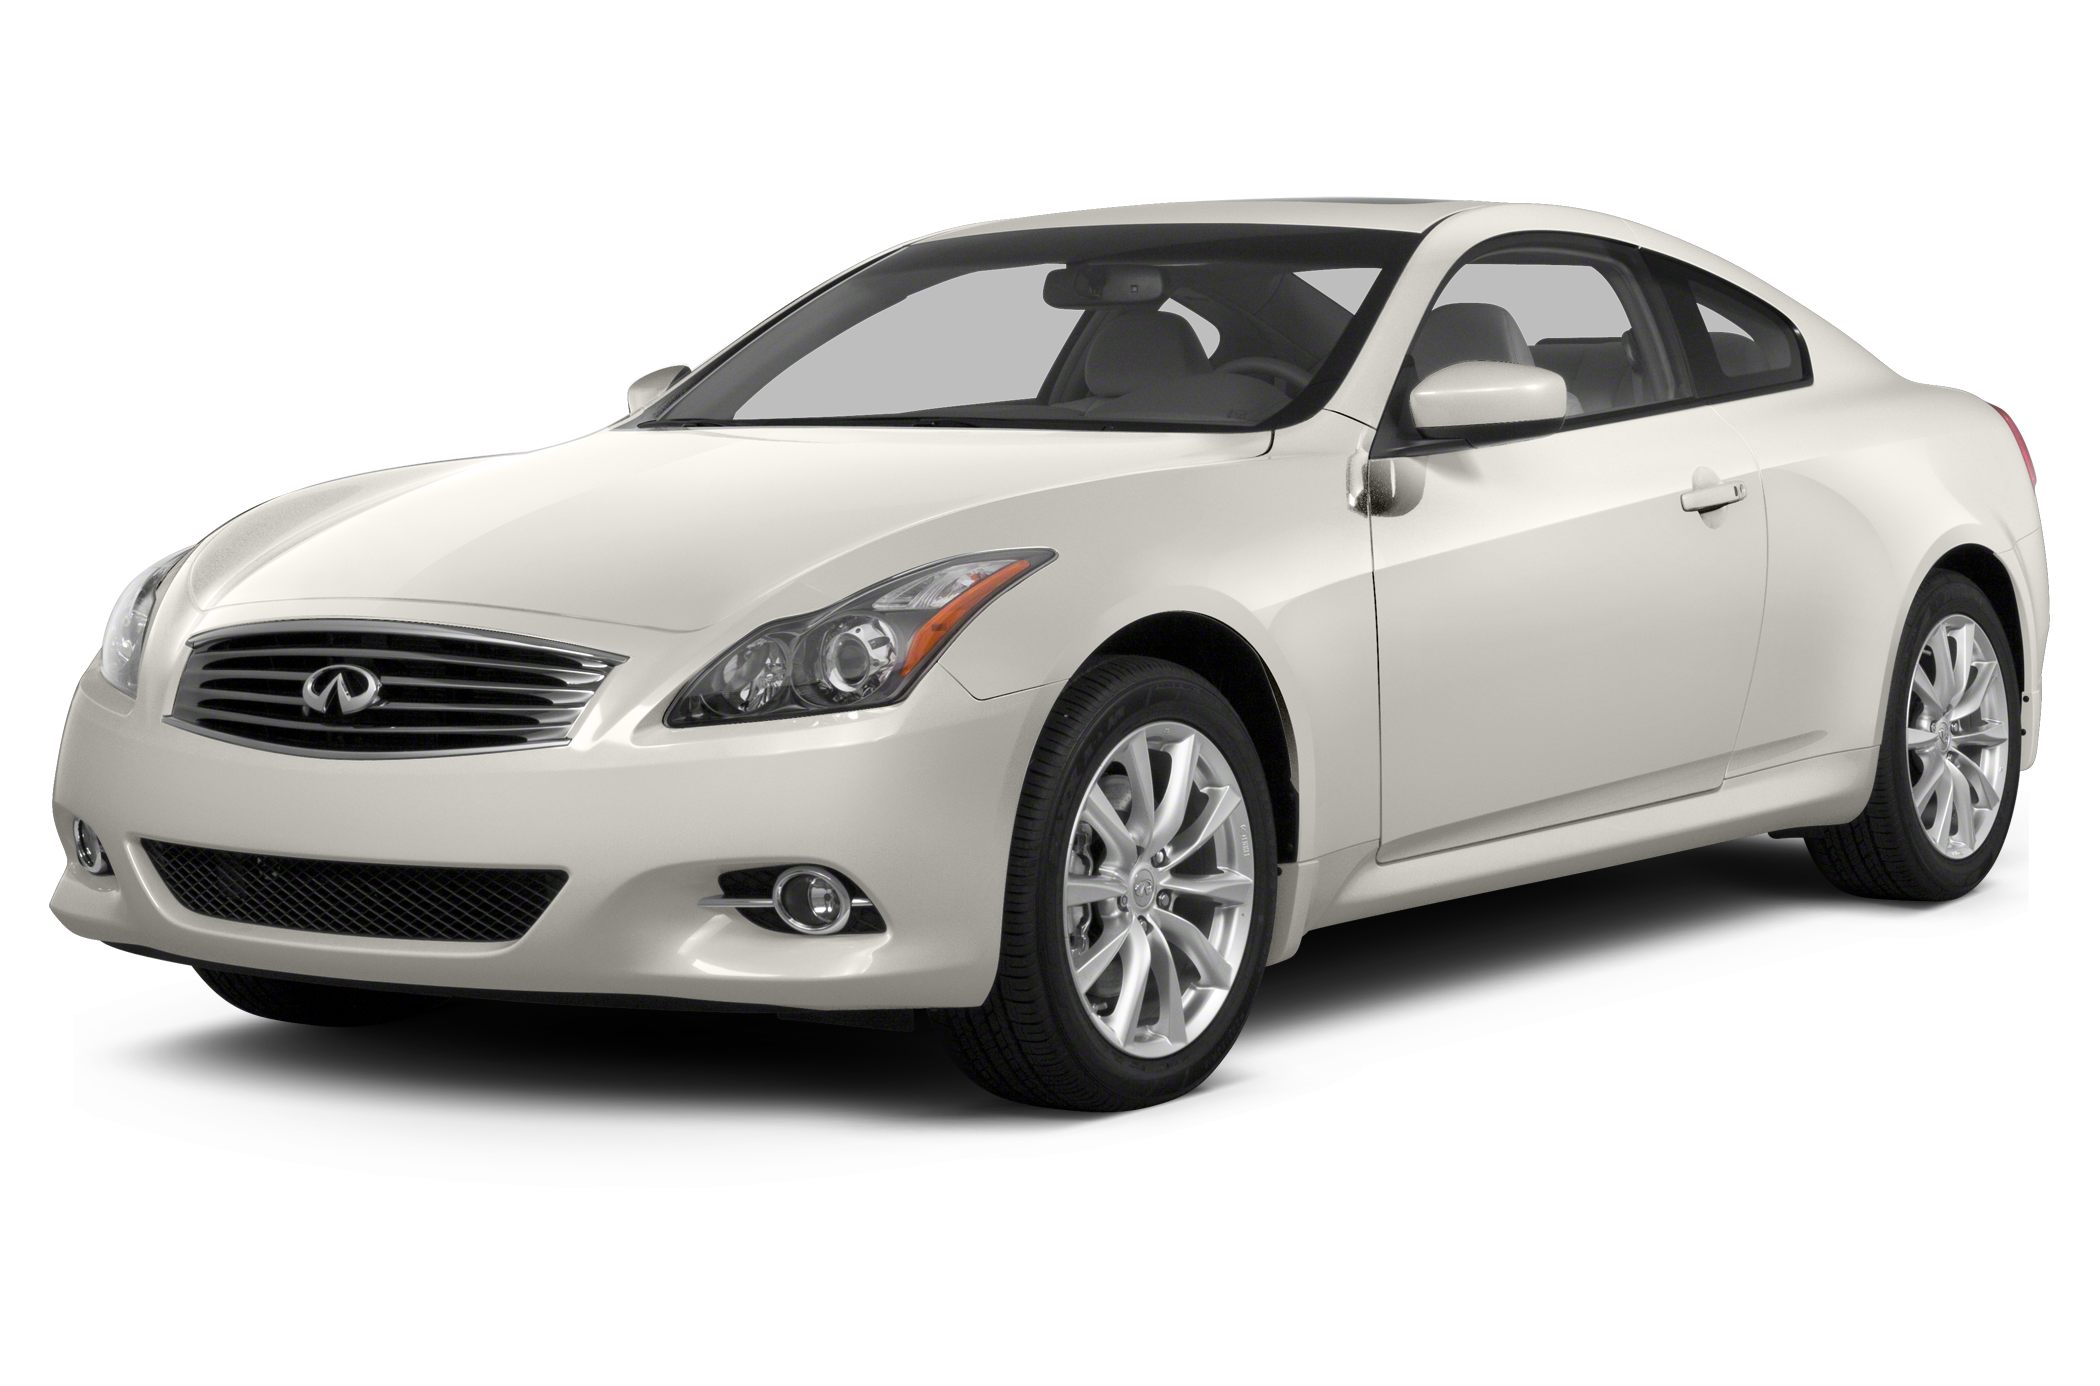 2013 Infiniti G37 X Sedan for sale in Burbank for $0 with 18,948 miles